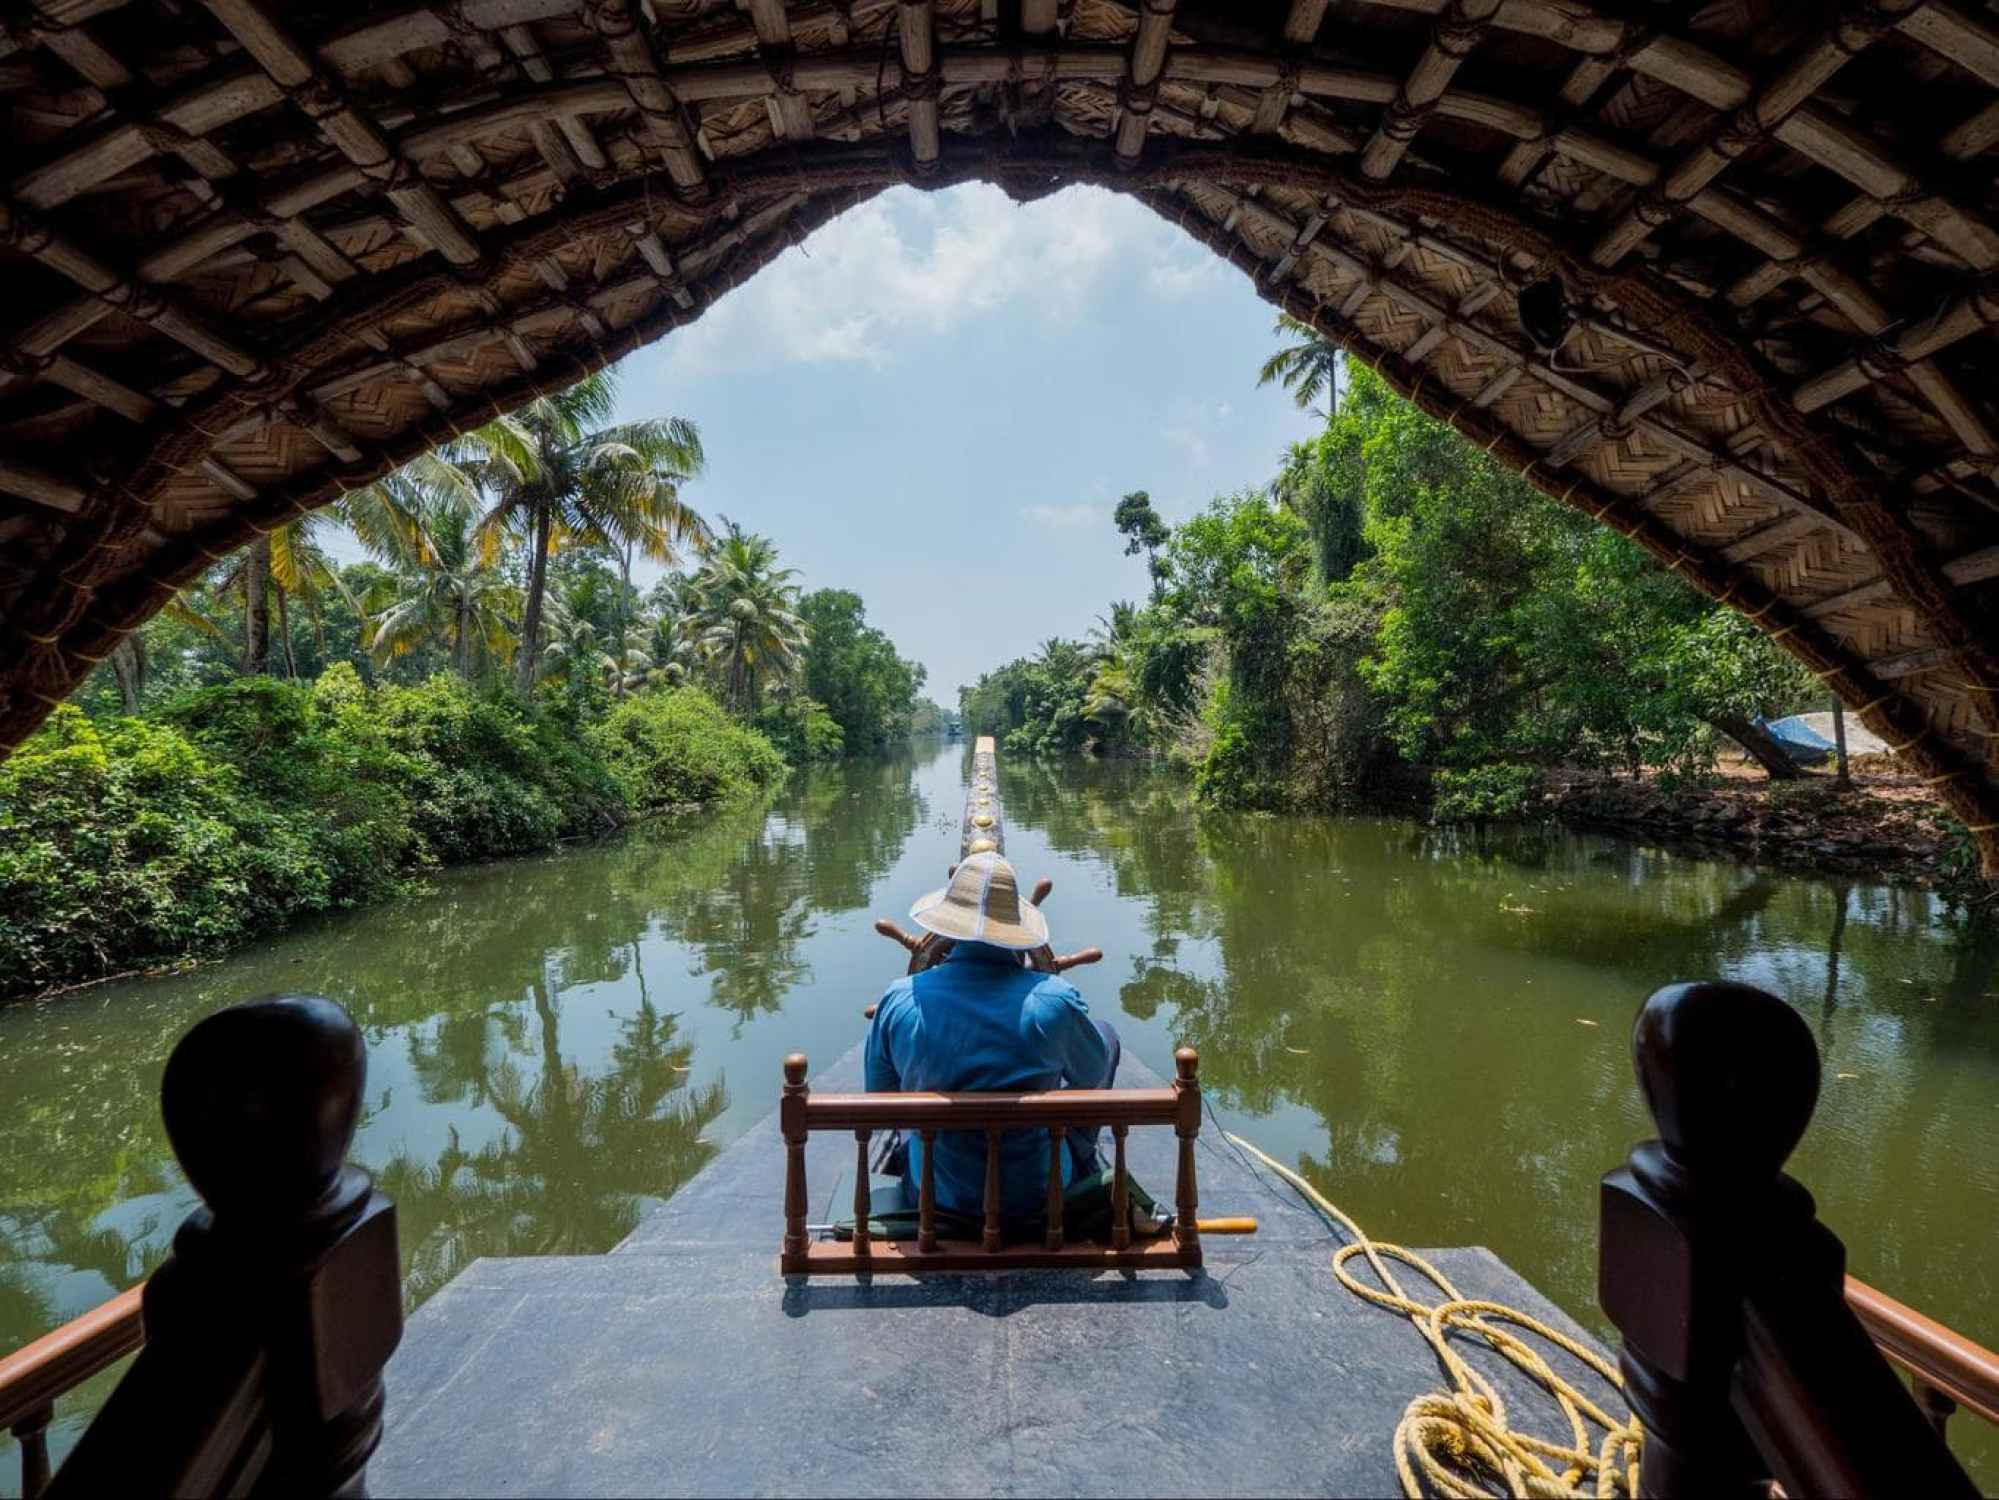 Guided tour providing insights into life on the backwaters